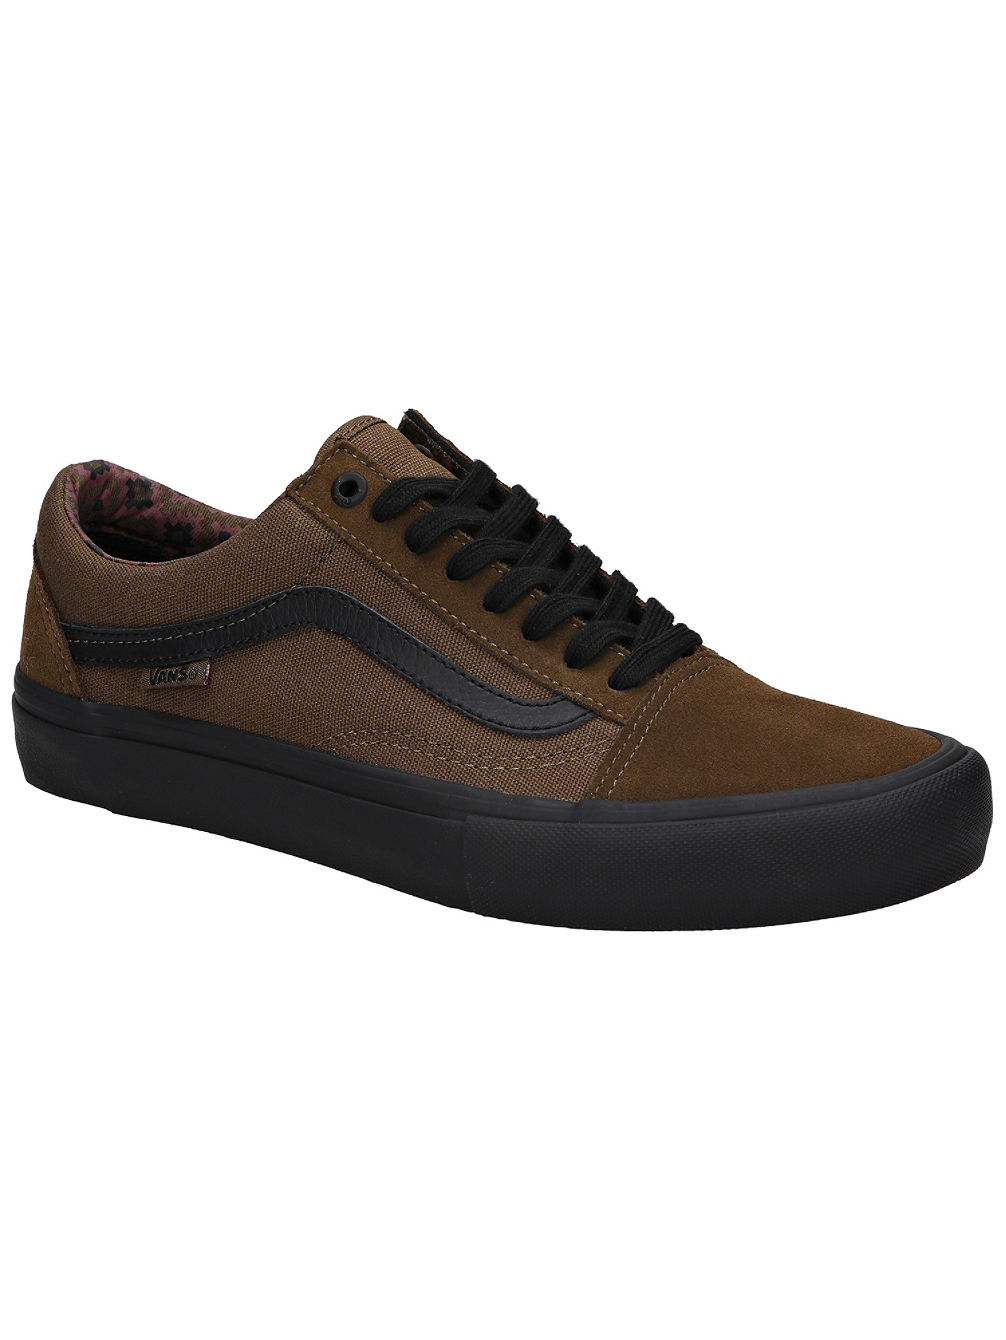 Dakota Roche Old Skool Pro Skateschuhe